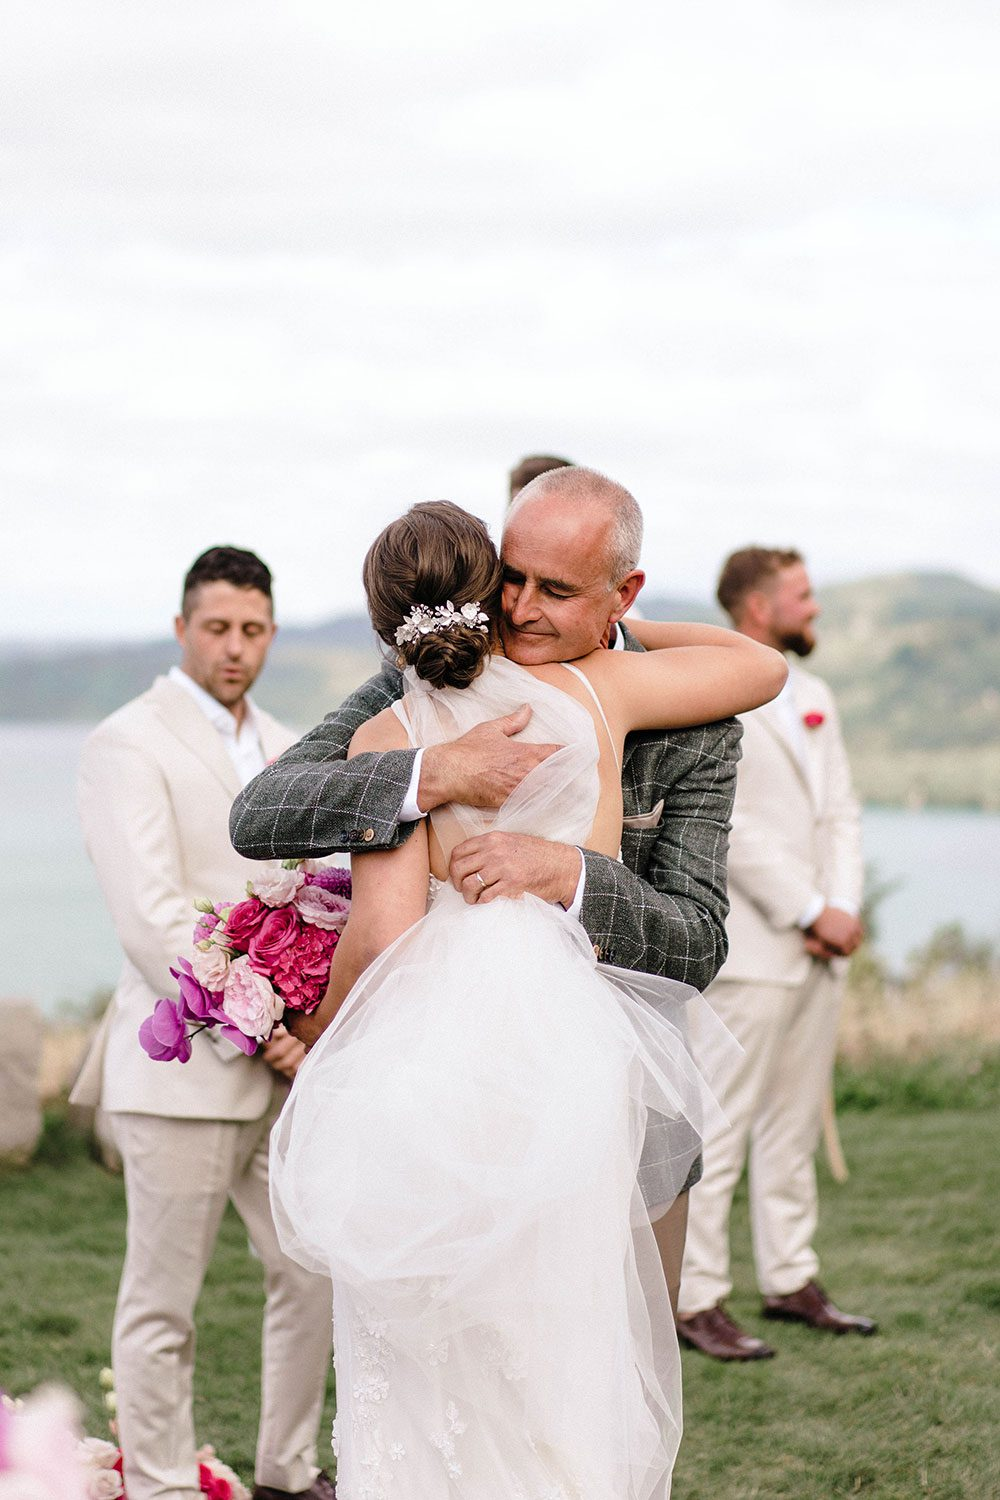 Bride wears bespoke E'More lace gown with boned bodice with hand beaded flower applique and full lace train by Auckland wedding dress maker Vinka designs - embrace with father at alter